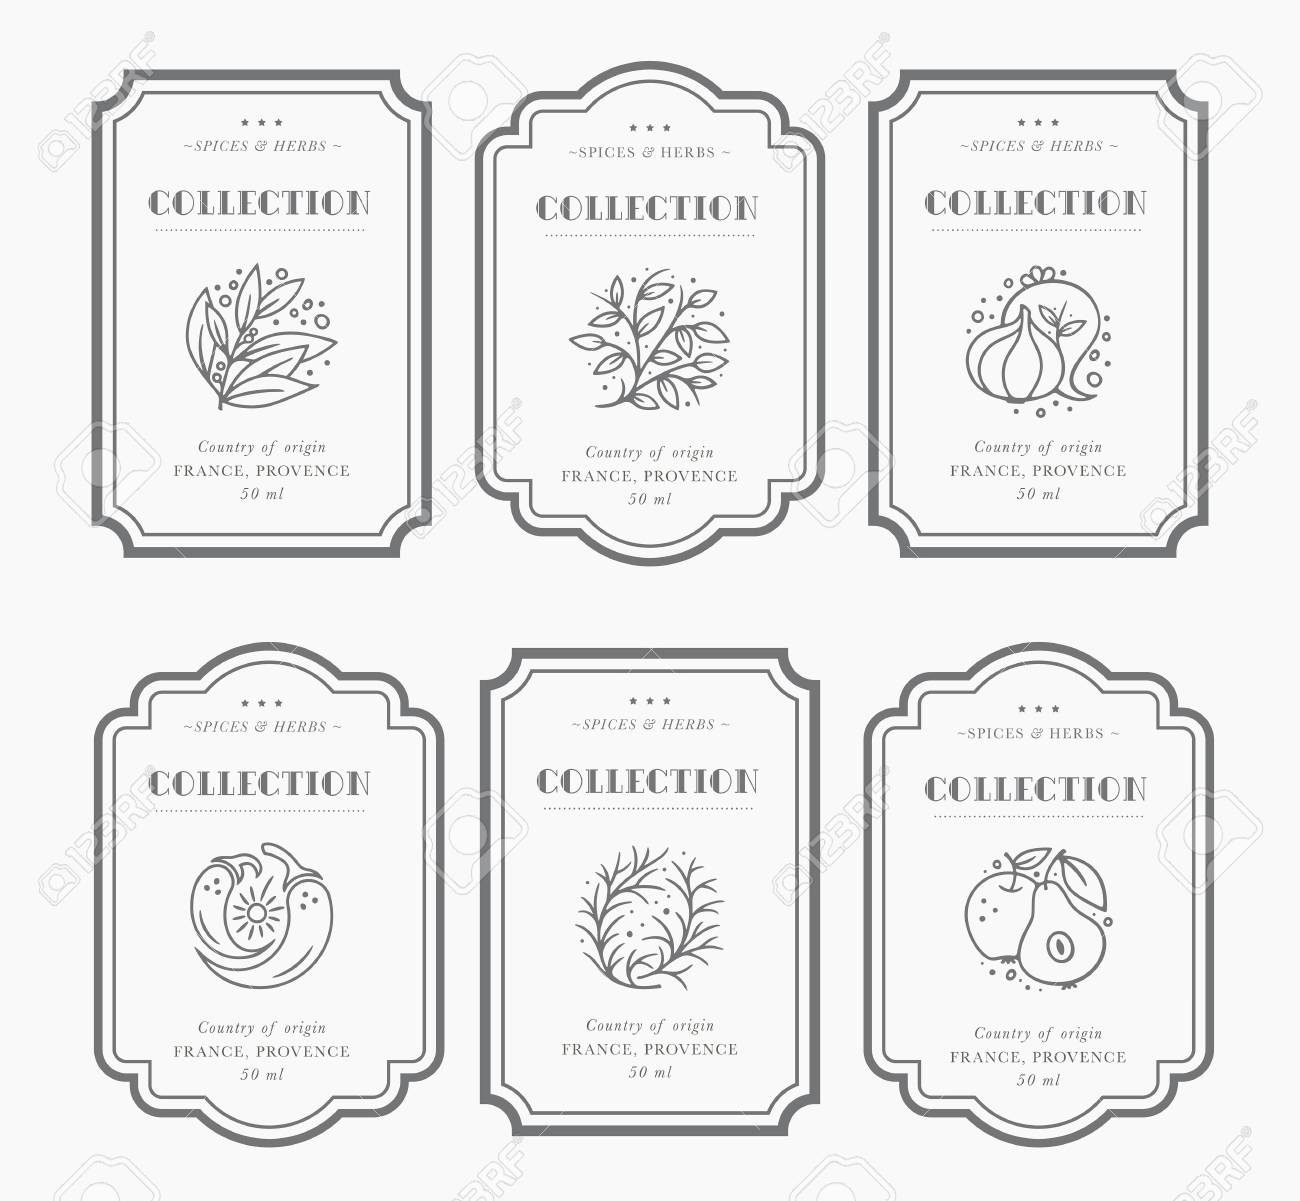 Customizable black and white Pantry label collection. Vintage packaging design templates for Herbs and Spices, dried fruit, vegetables, nuts etc - 111520482